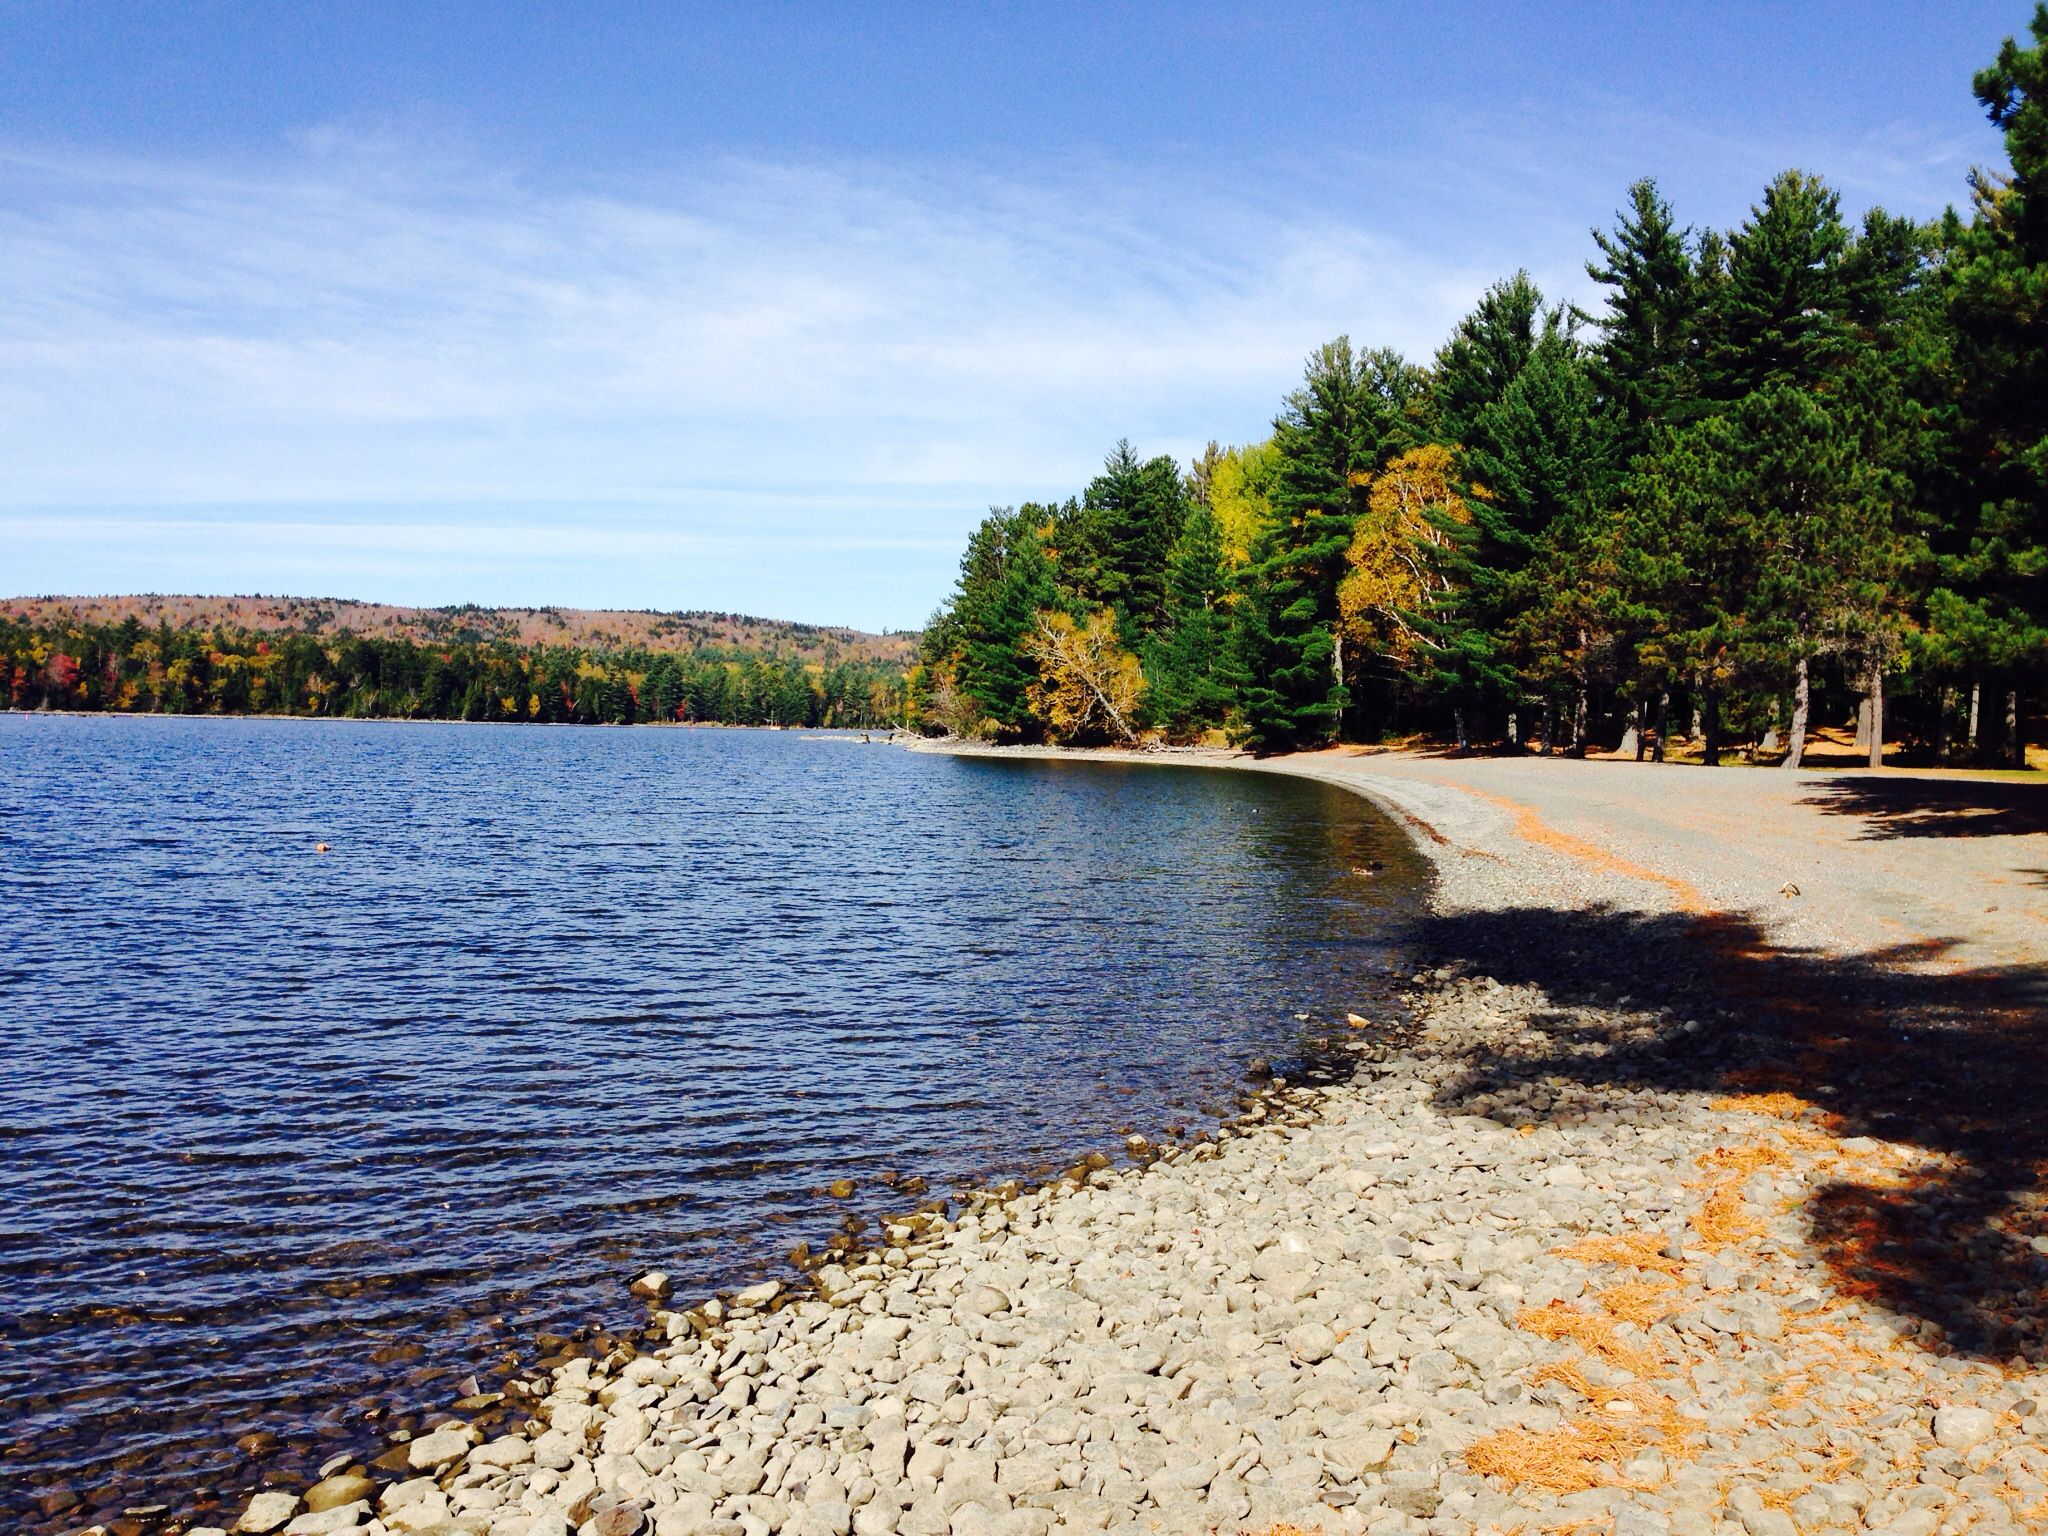 Lily Bay State Park - Moosehead Lake   Camping ideas   State parks Lilly Bay State Park on ferry beach state park, hudson state park, popham beach state park, oxford state park, moose point state park, sebago lake state park, lewiston state park, crescent beach state park, ludlow state park, reid state park, guilford state park, aroostook state park, two lights state park, baxter state park, wolfe's neck woods state park, damariscotta lake state park, quoddy head state park, rangeley lake state park, grafton notch state park, monticello state park, northfield state park, warren island state park, cobscook bay state park, mount blue state park, bradbury mountain state park, roque bluffs state park, plymouth state park, camden hills state park, lamoine state park, naples state park,